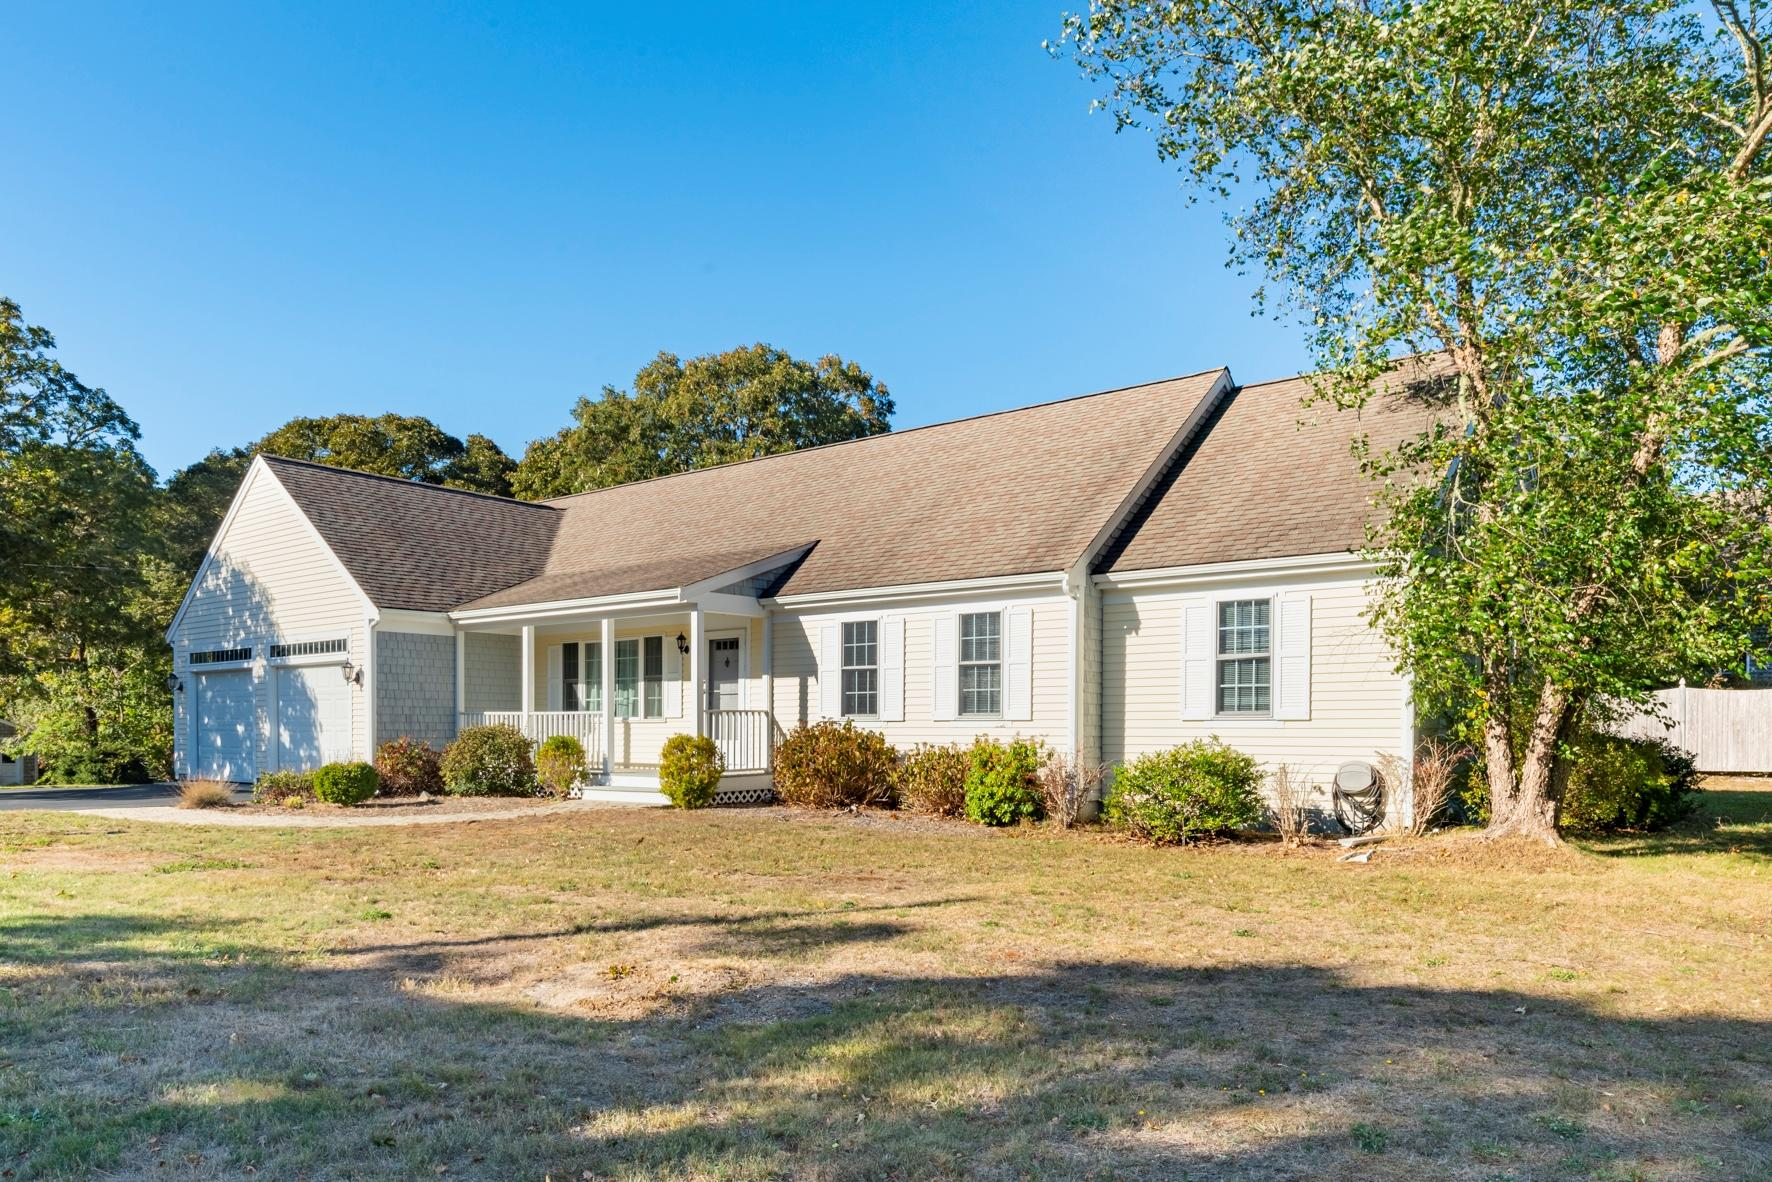 12 Katie Ford Road, Chatham MA, 02633 details